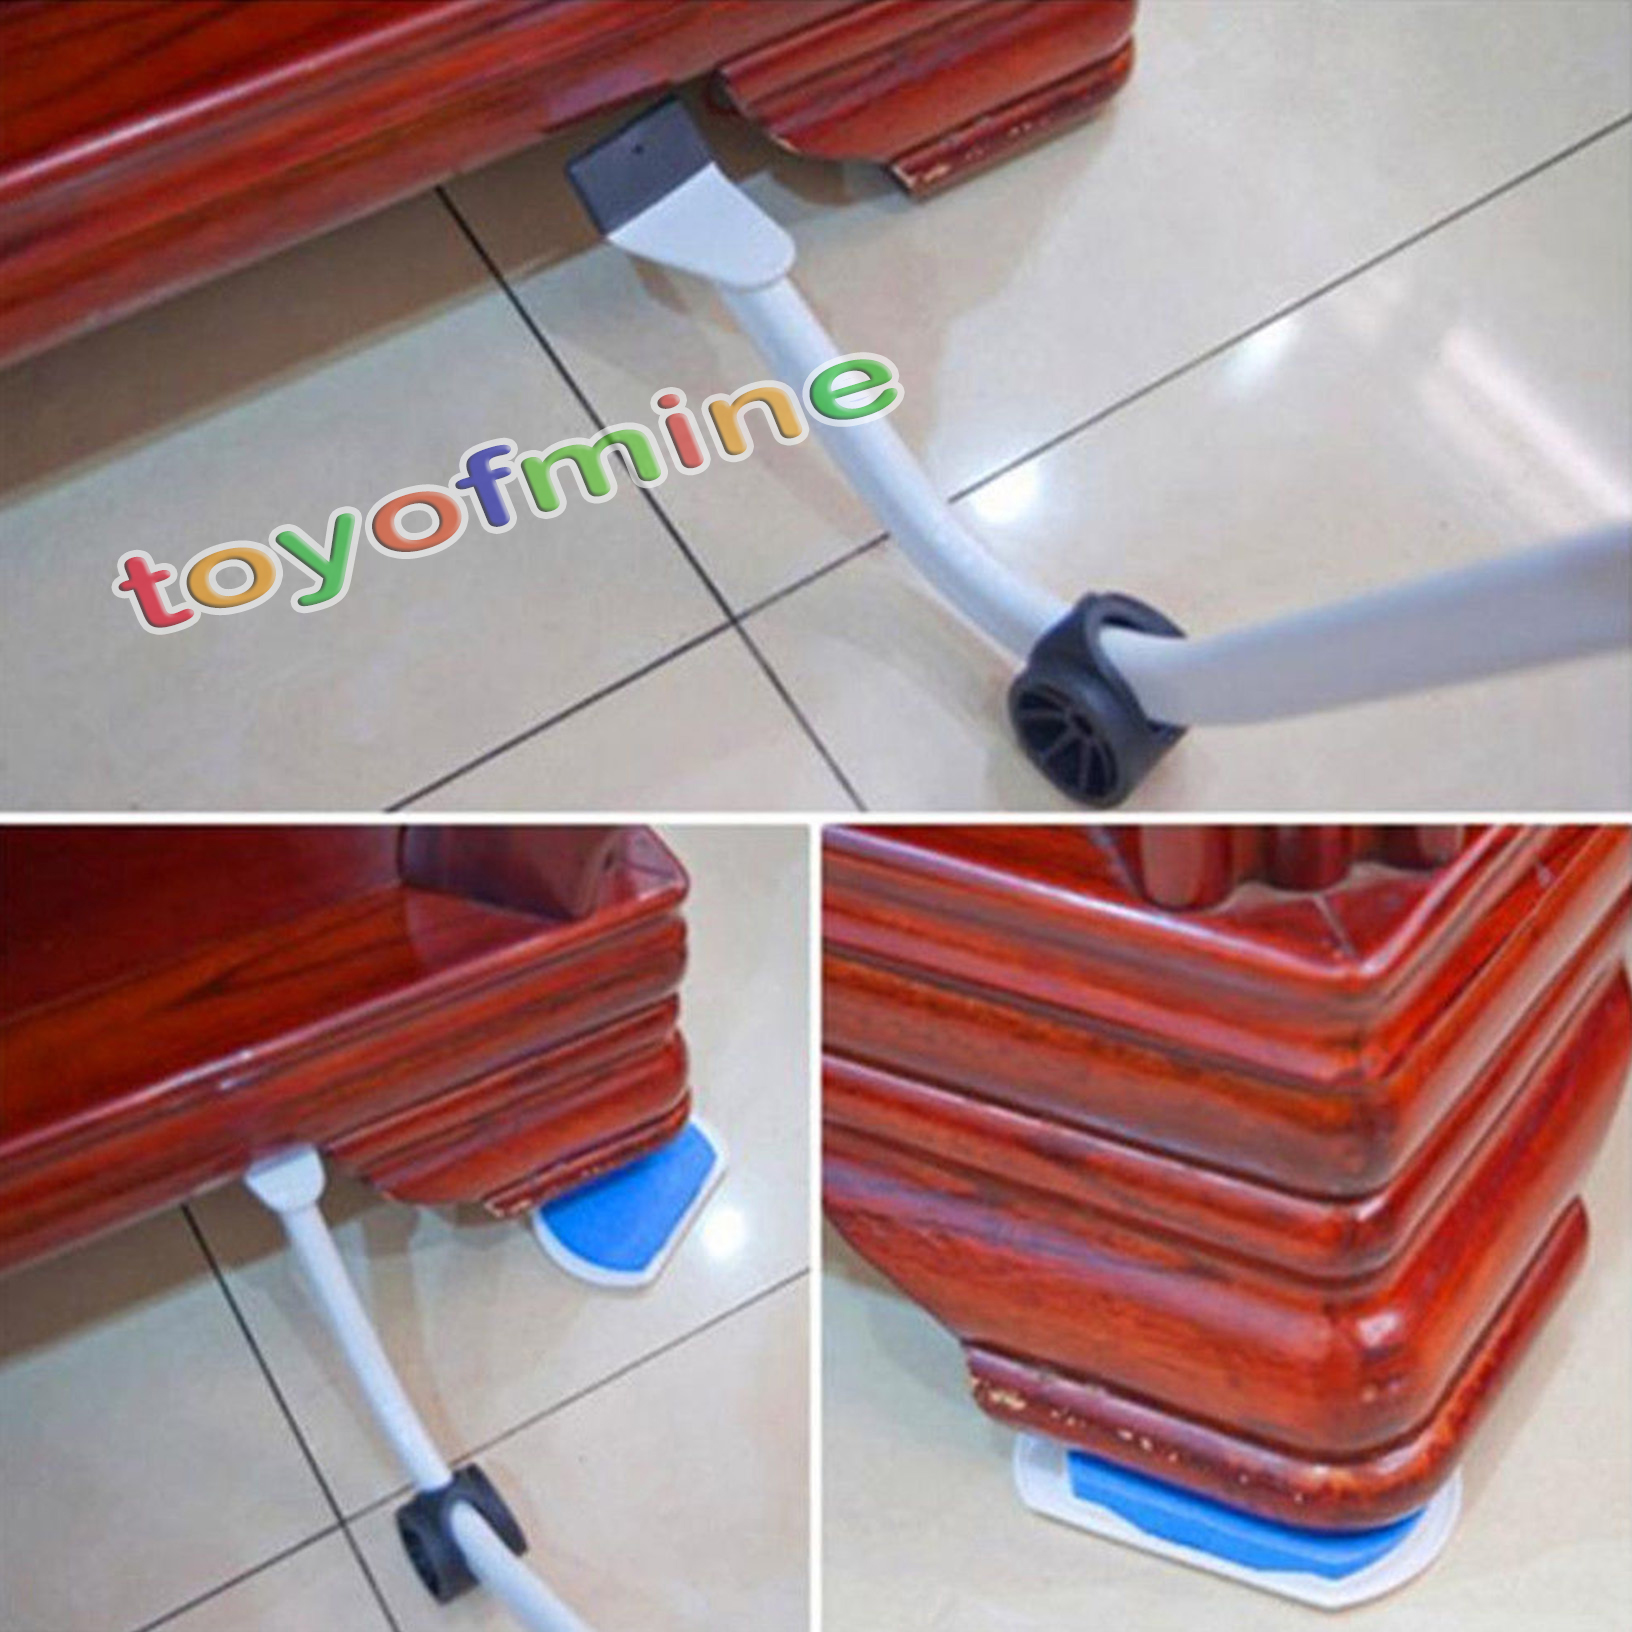 Heavy Furniture Moving System Lifter Tool With 4 Slide